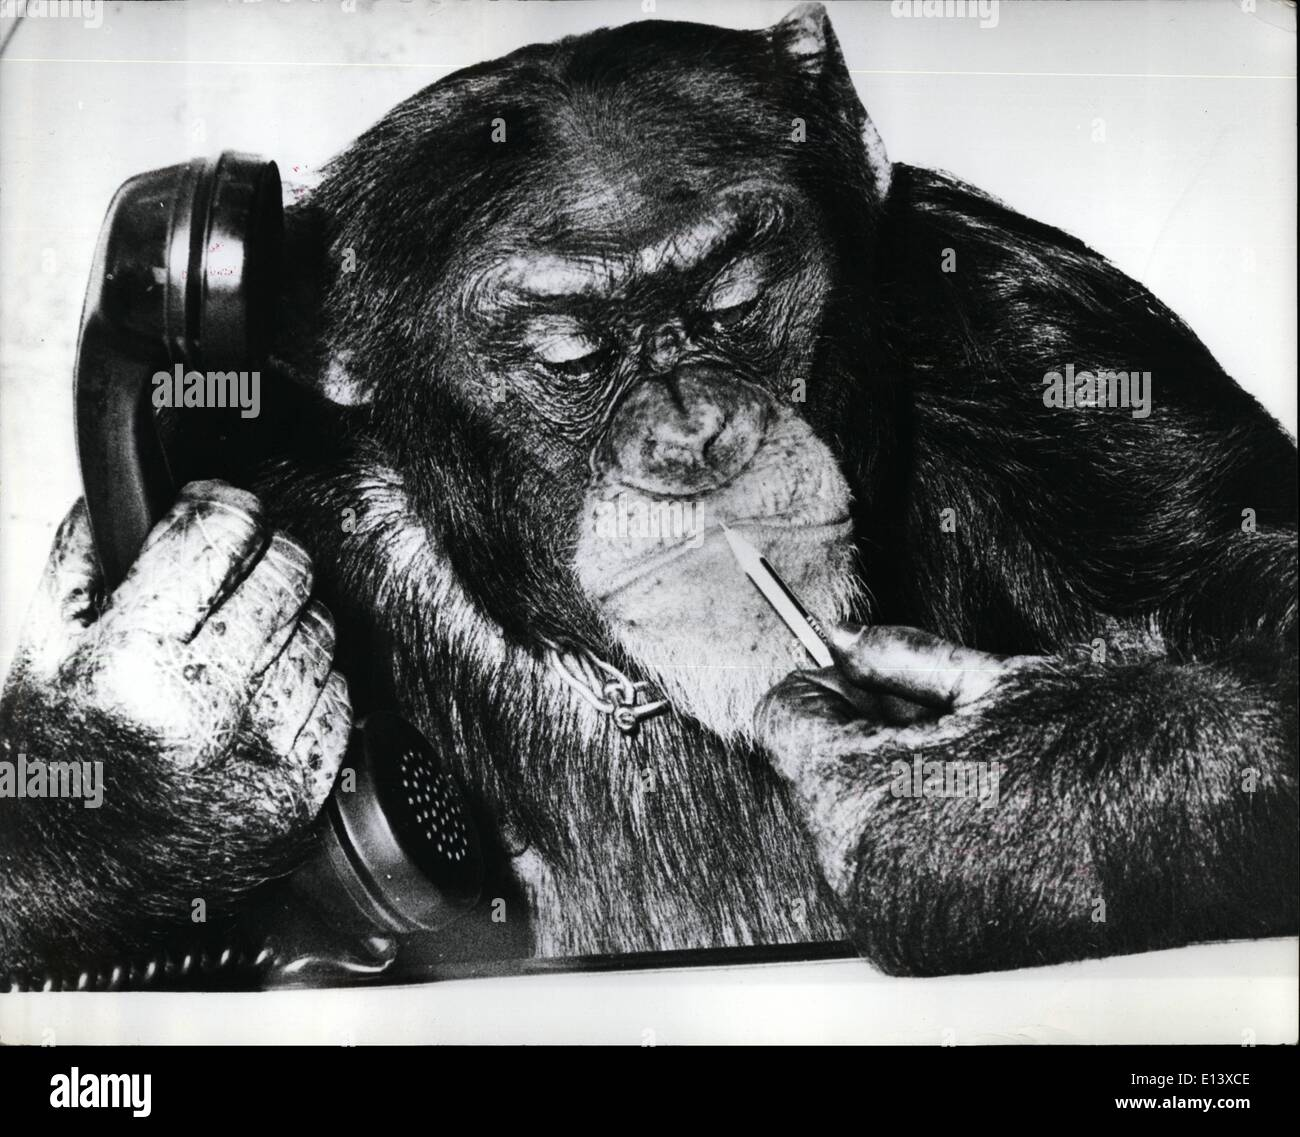 Mar. 27, 2012 - ''Oh, Madame, I regret: There is no possiblity for a for a reservation this evening at the well known Hansa Theatre in Hamburg, says Timmy the Chimp who took over the booking office while the booking clerk went to lunch. - Stock Image